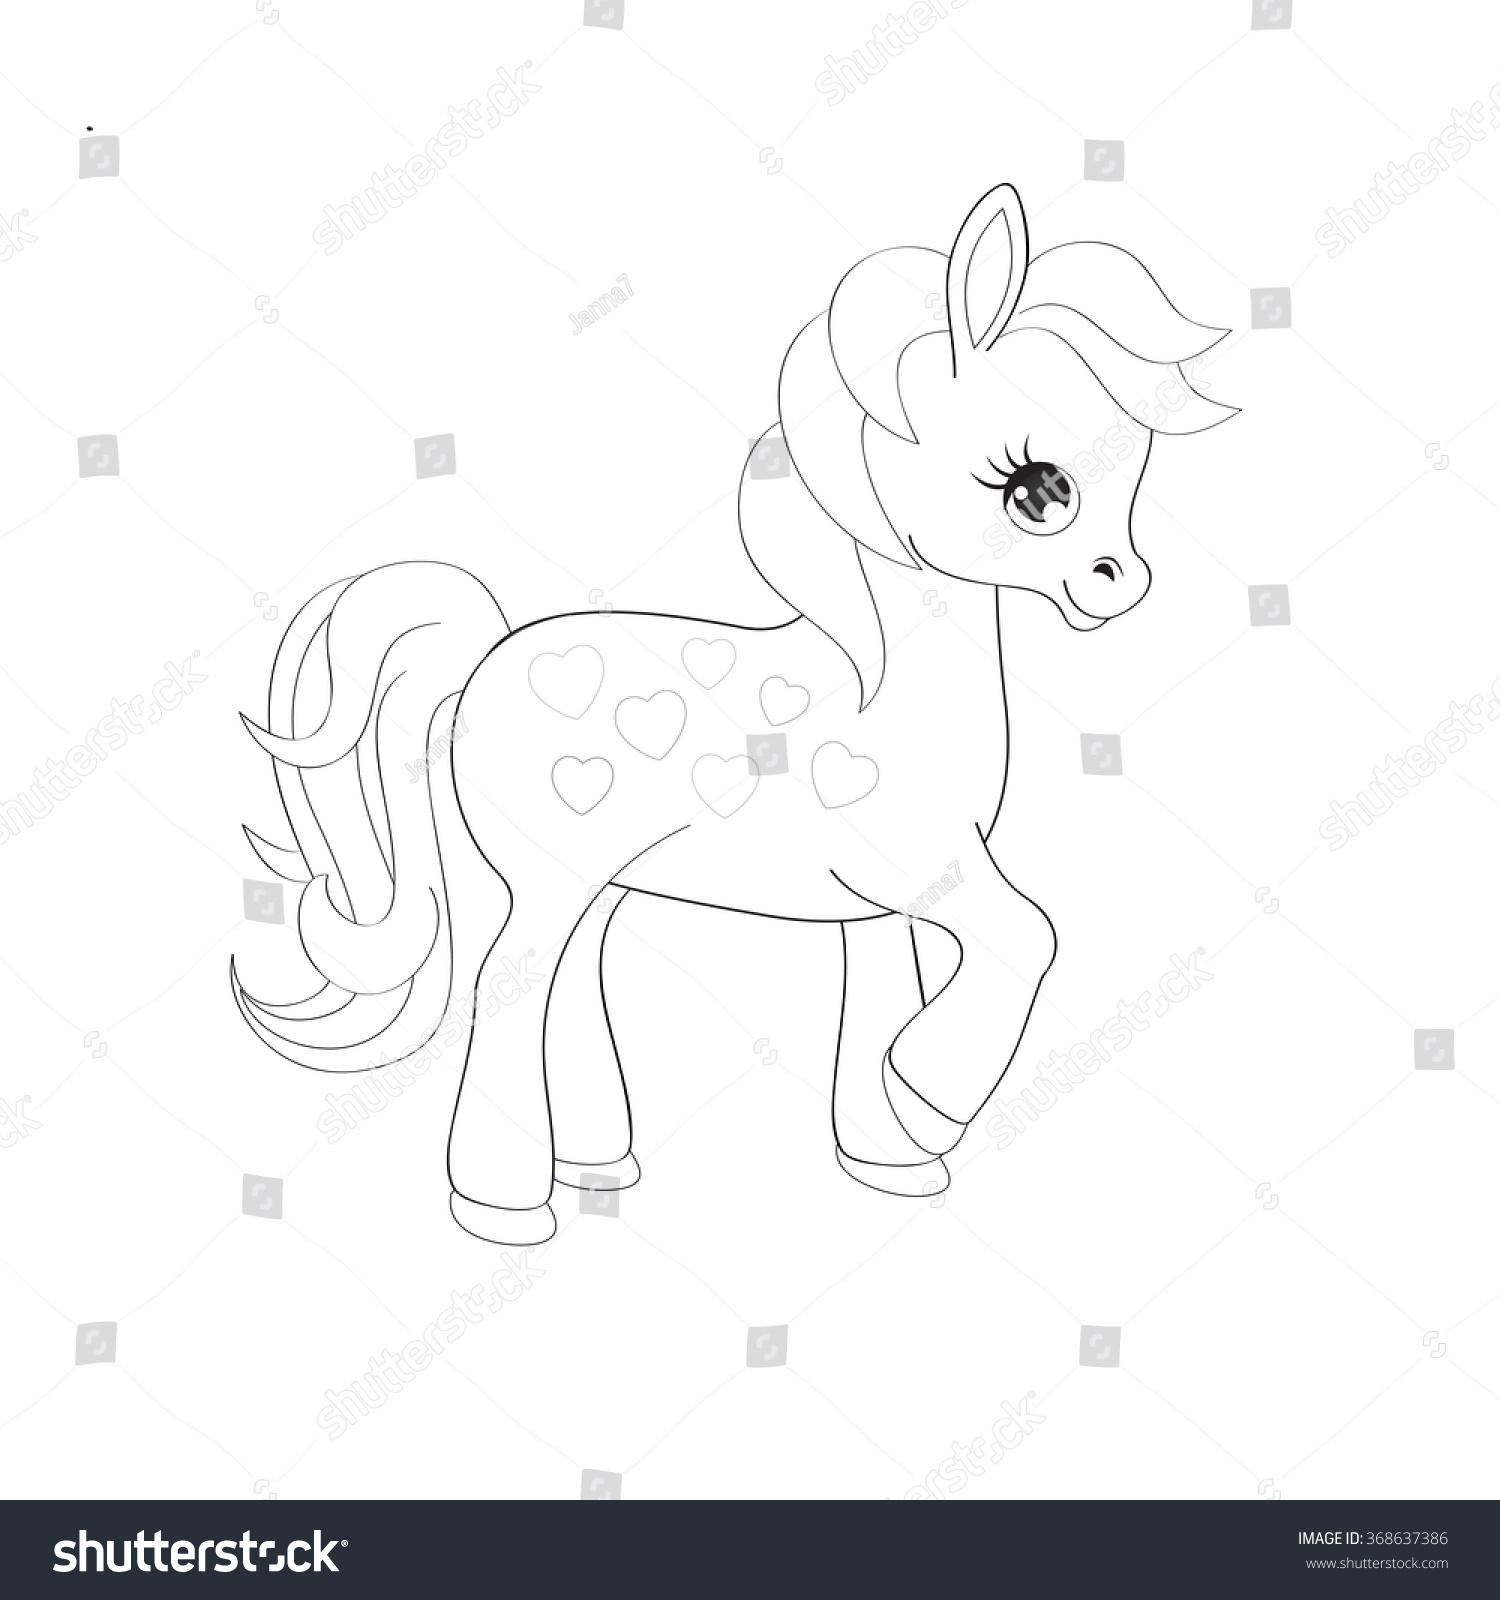 cute pony coloring page stock vector 368637386 shutterstock